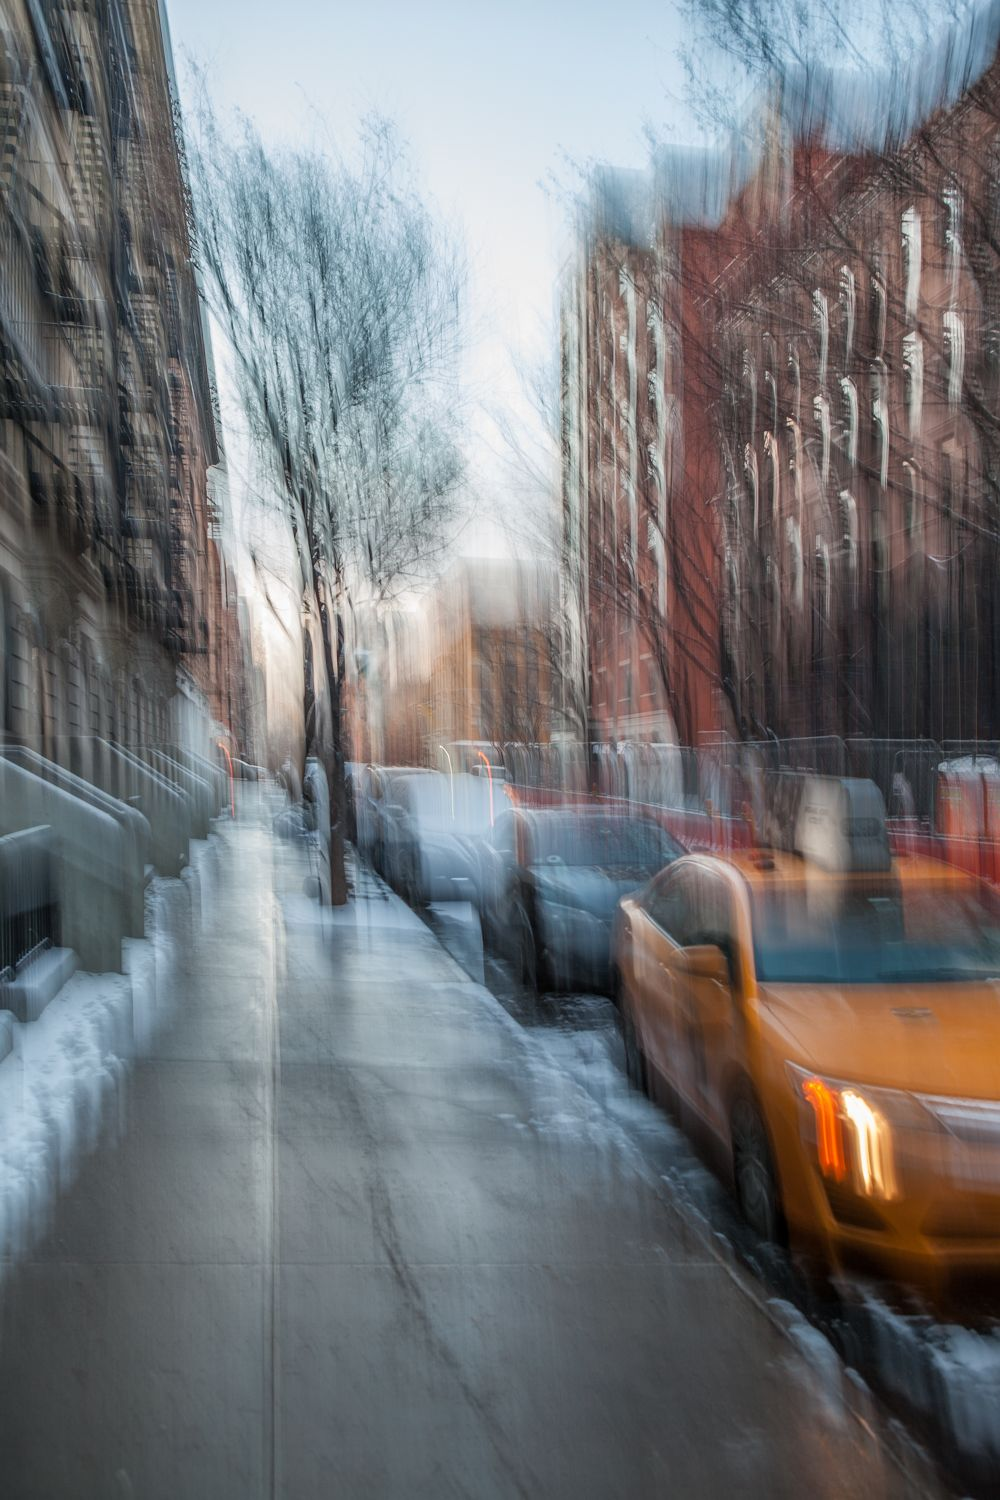 New York Dream 06,Xavier Dumoulin,Photographie contemporaine